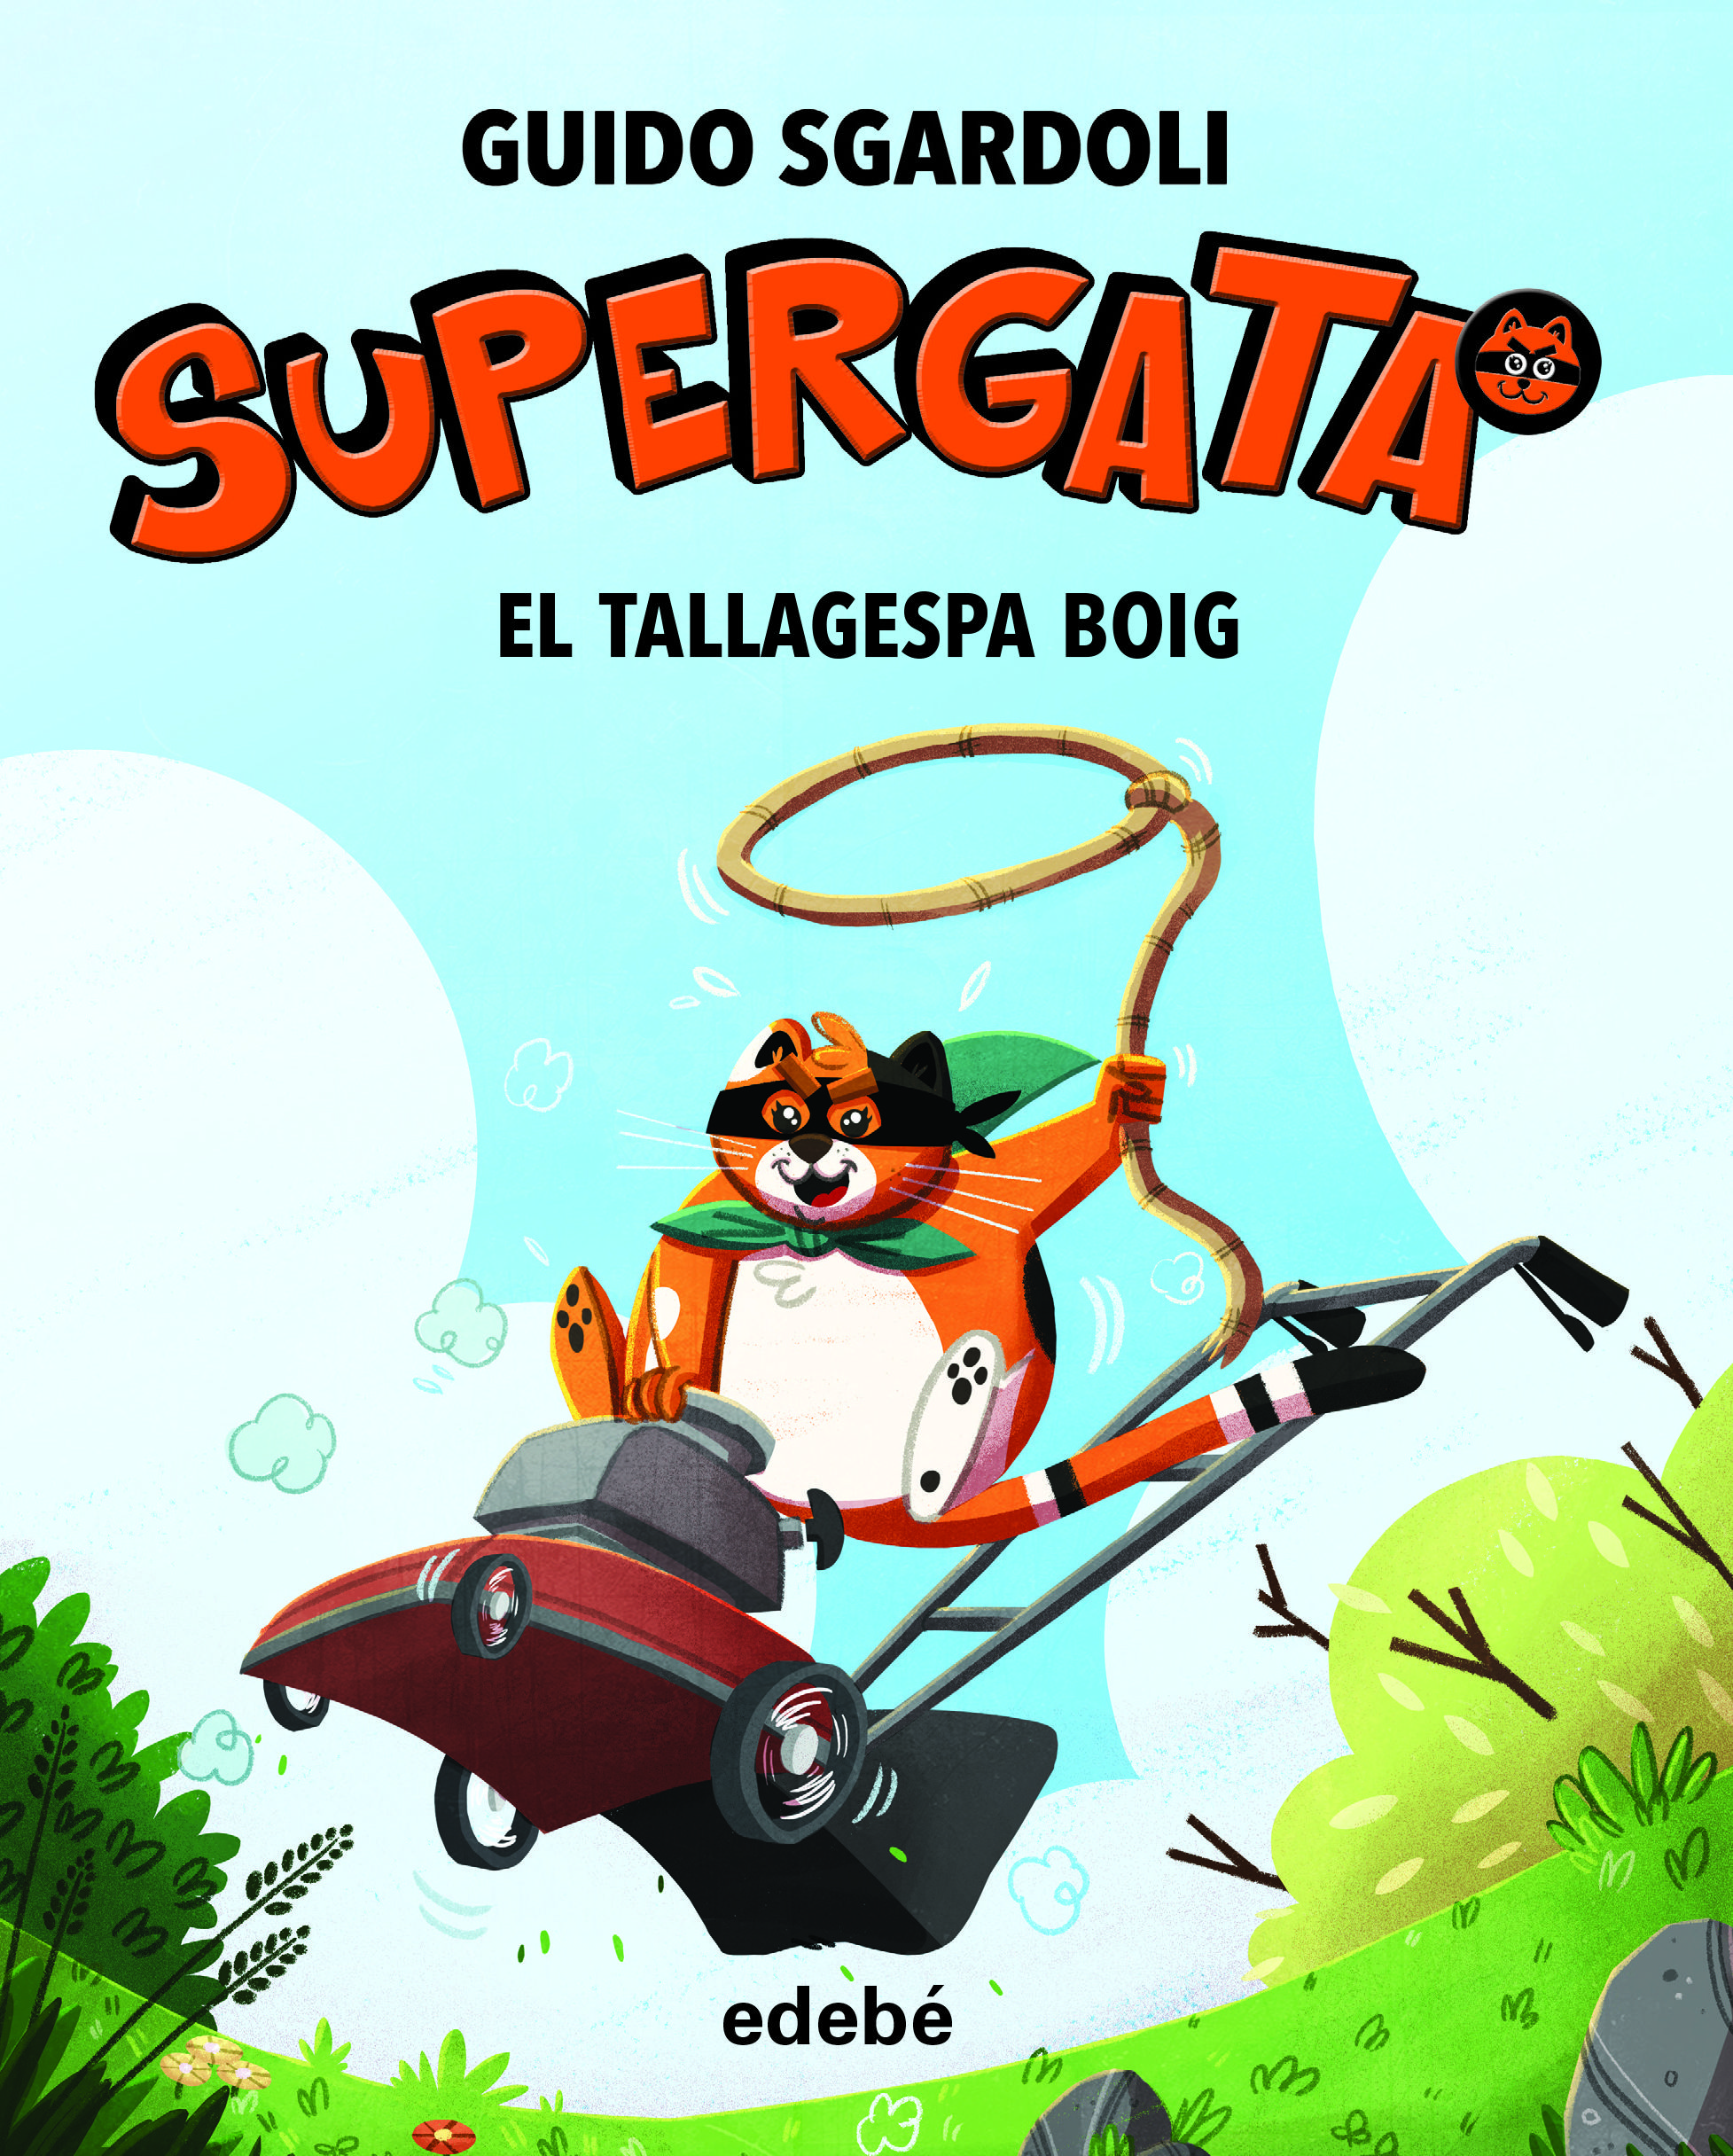 SUPERGATA TALLAGESPA BOIG